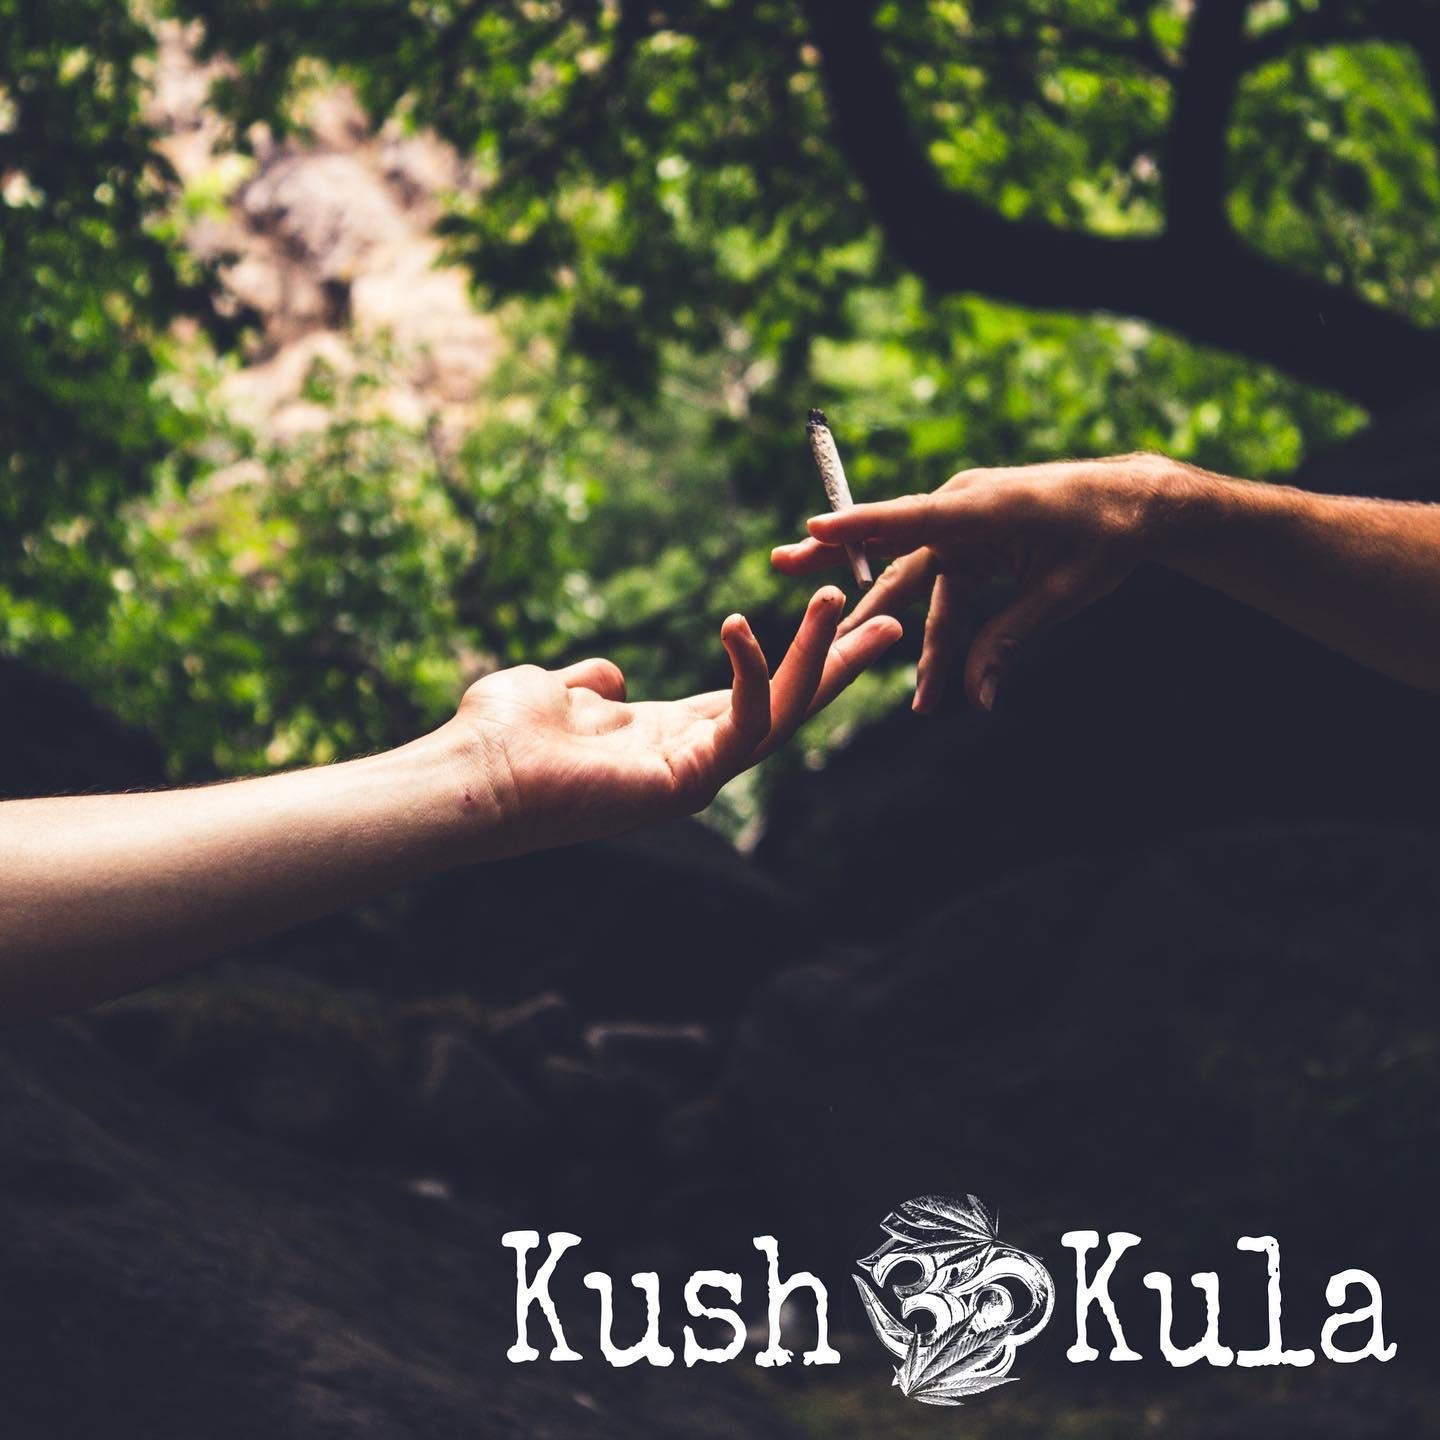 Elevated Yoga and Sound Bath at Kush Kula